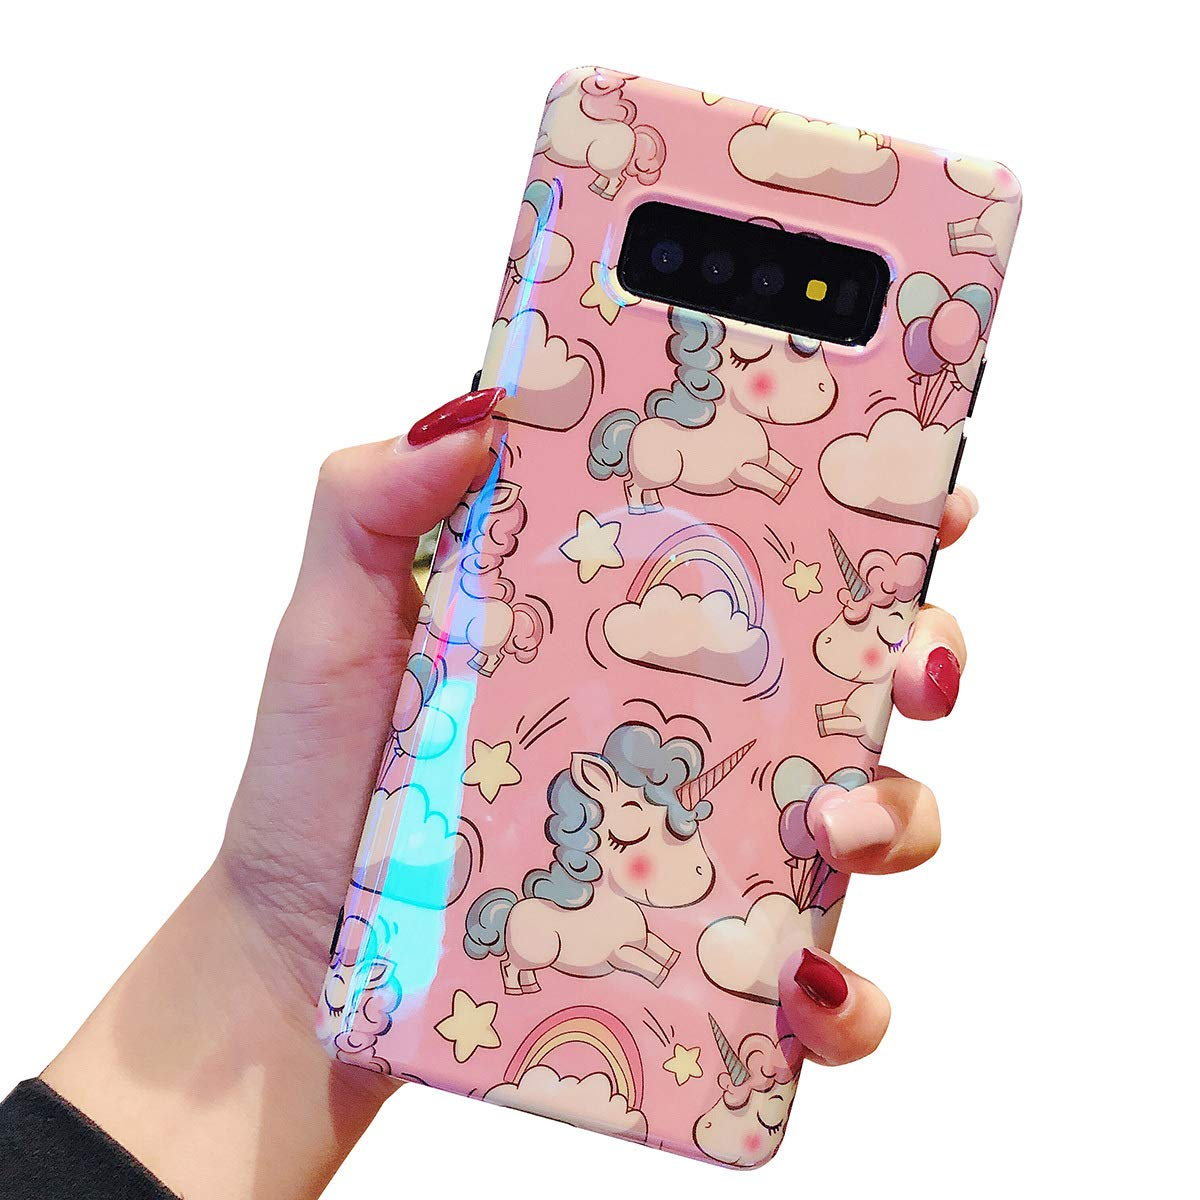 Fusicase For Galaxy S10 Cartoon Case Cute Unicorn Rainbow Pattern Case For Samsung Galaxy S10 Case Tpu Protective Cover Unicorn Case For Galaxy S10 Pink Buy Online In Gibraltar At Gibraltar Desertcart Com Productid